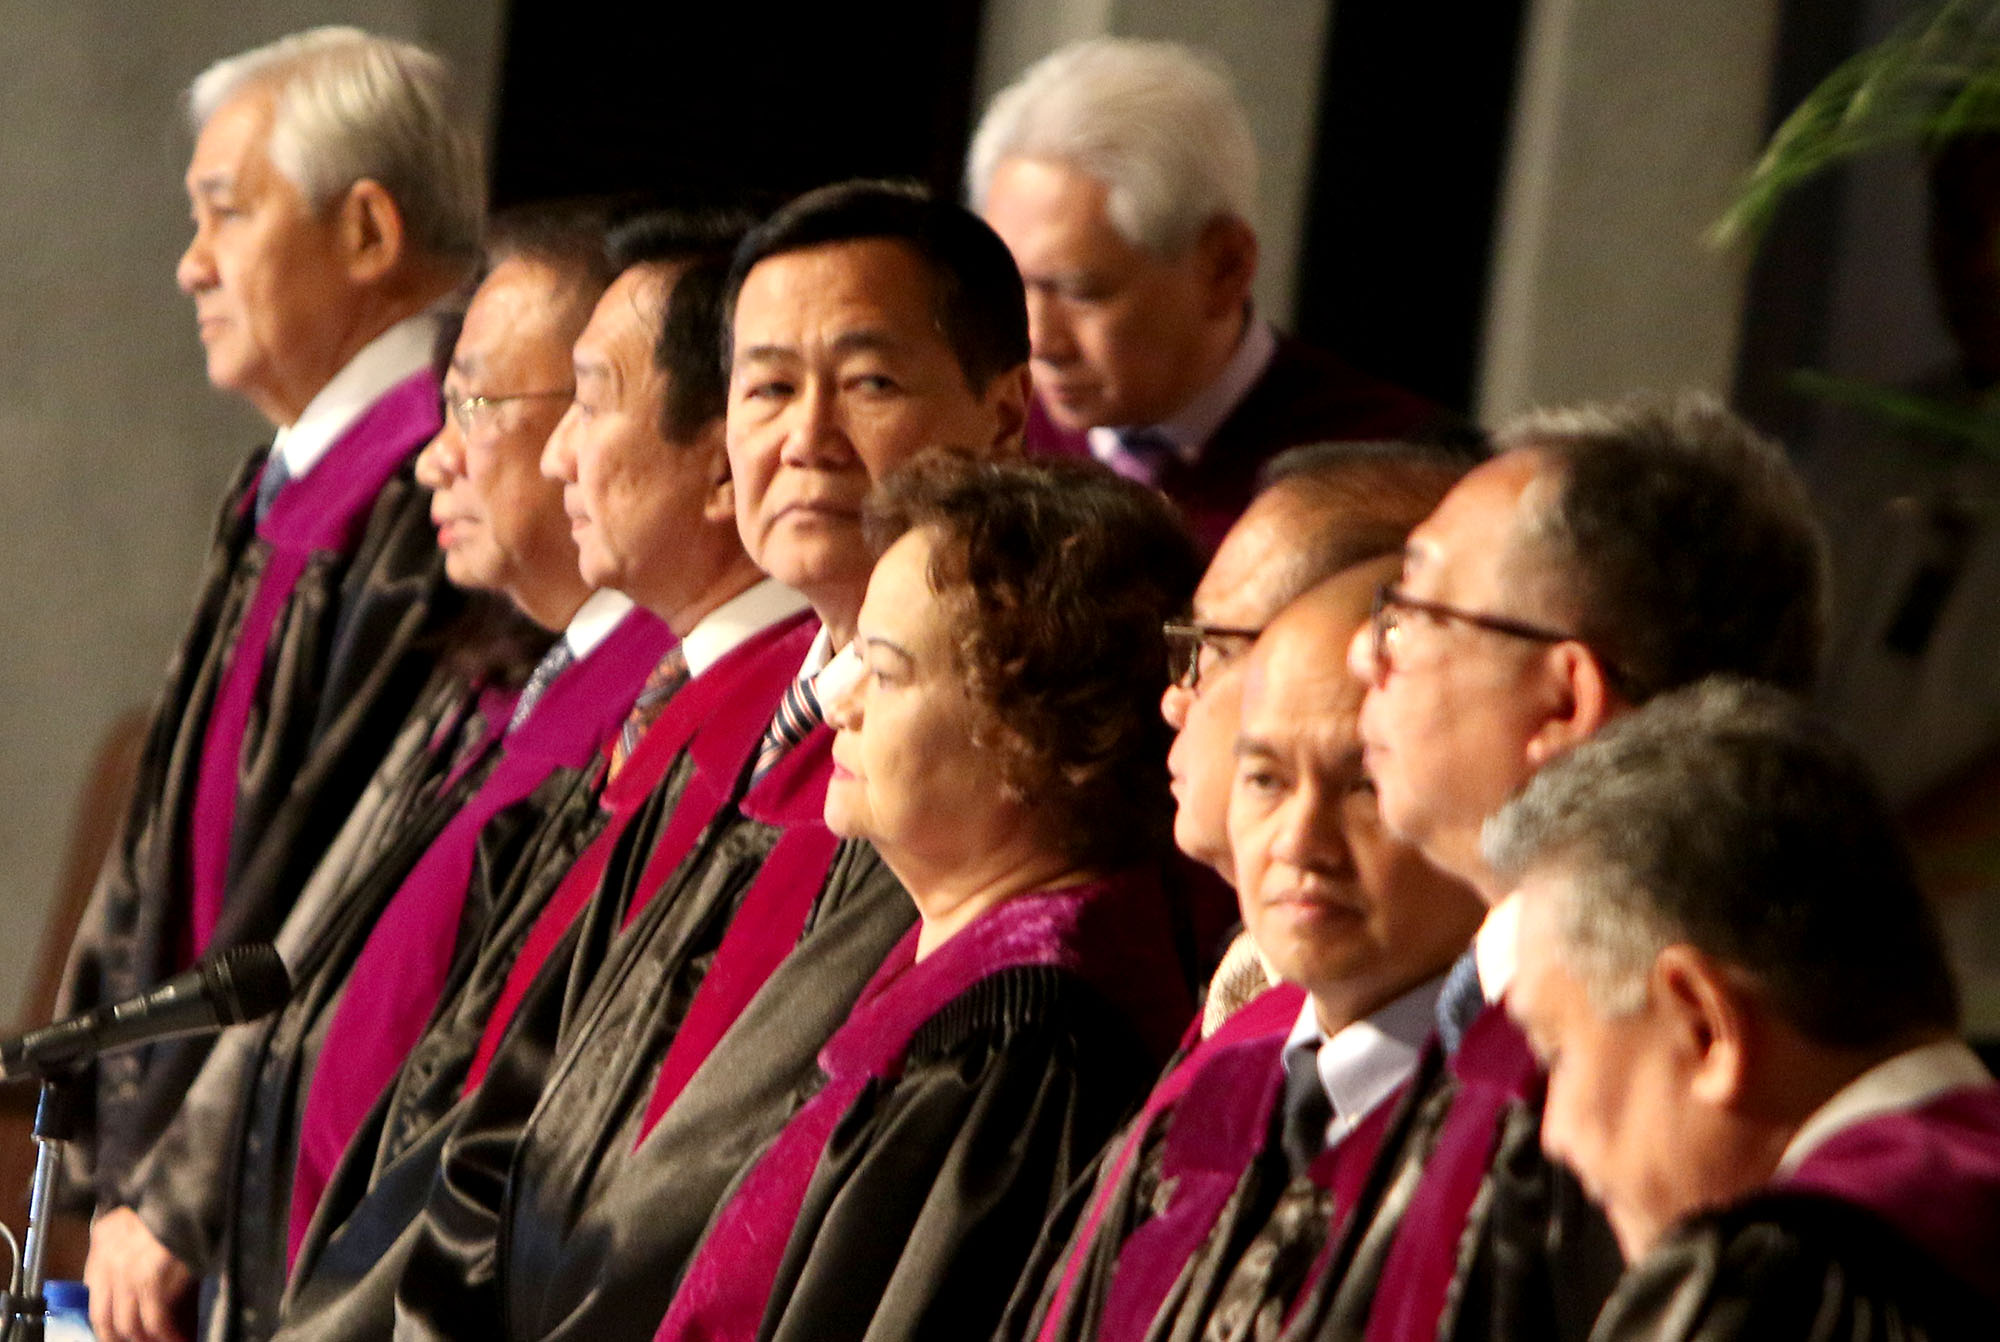 SUPREME COURT. Justices of the High Court swear in the new lawyers one month after the majority ousted chief justice Maria Lourdes Sereno. Photo by Inoue Jaena/Rappler